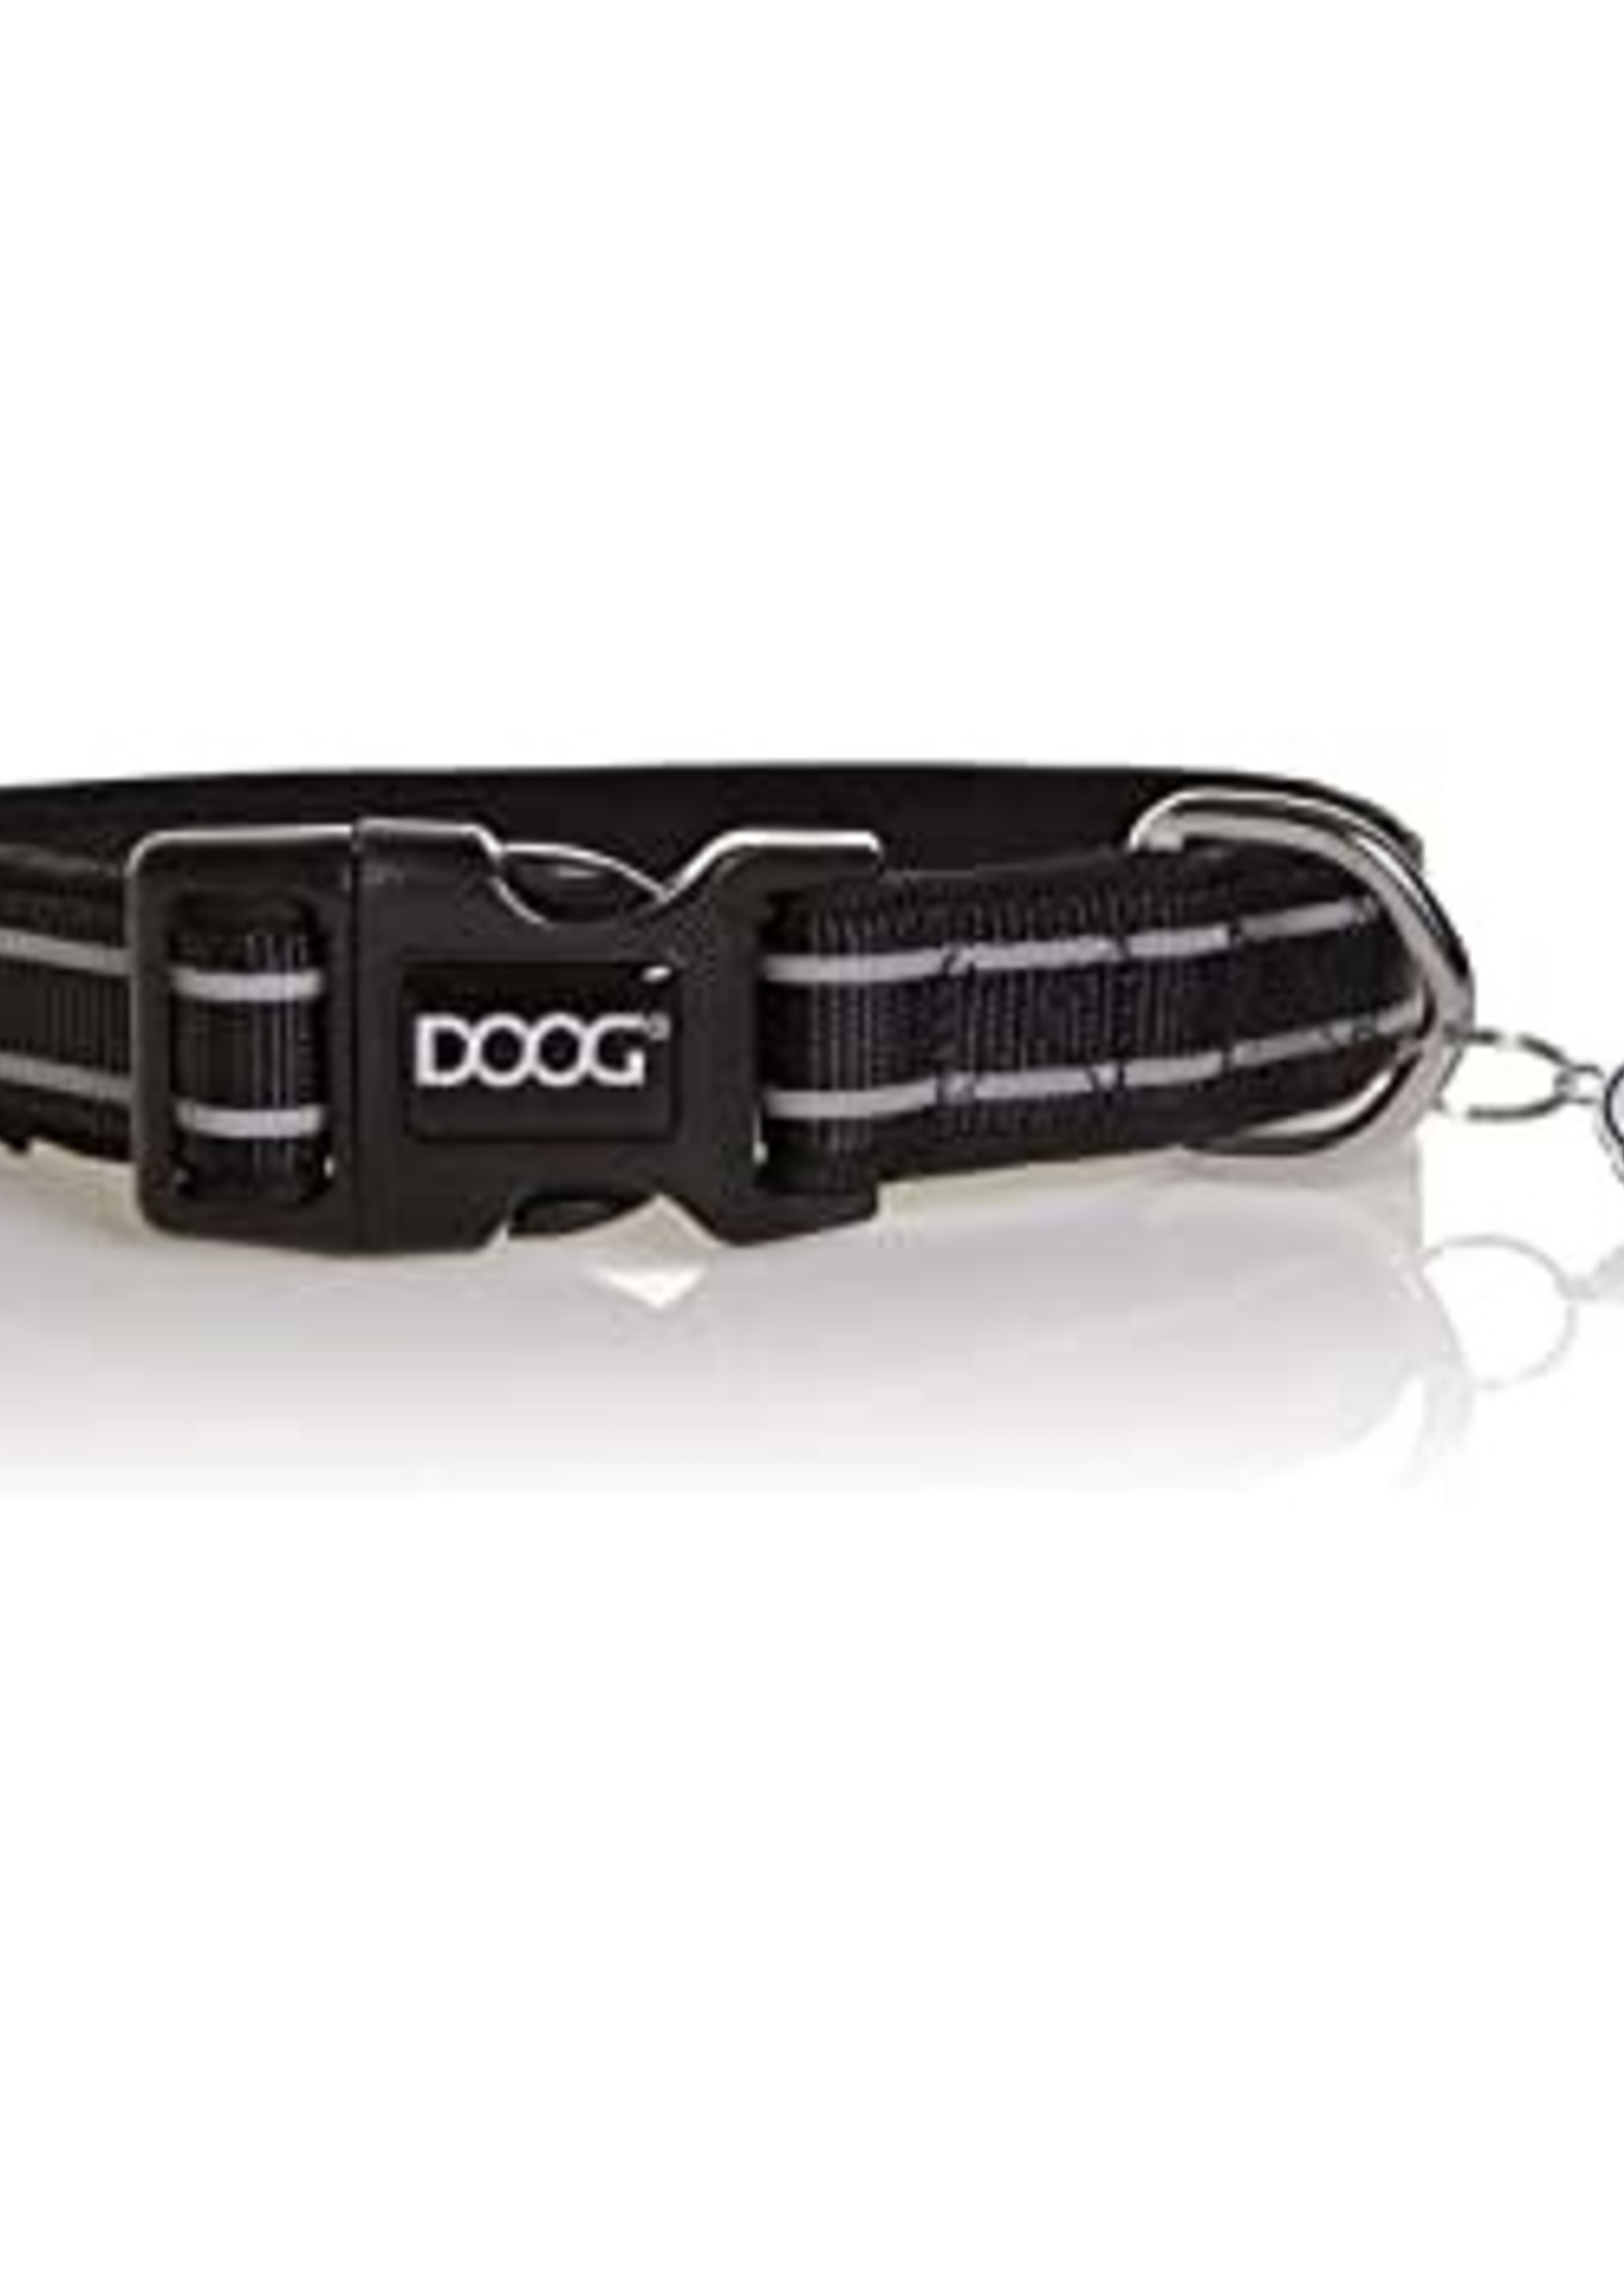 DOOG INC NEOPRENE DOG COLLAR - LASSIE M